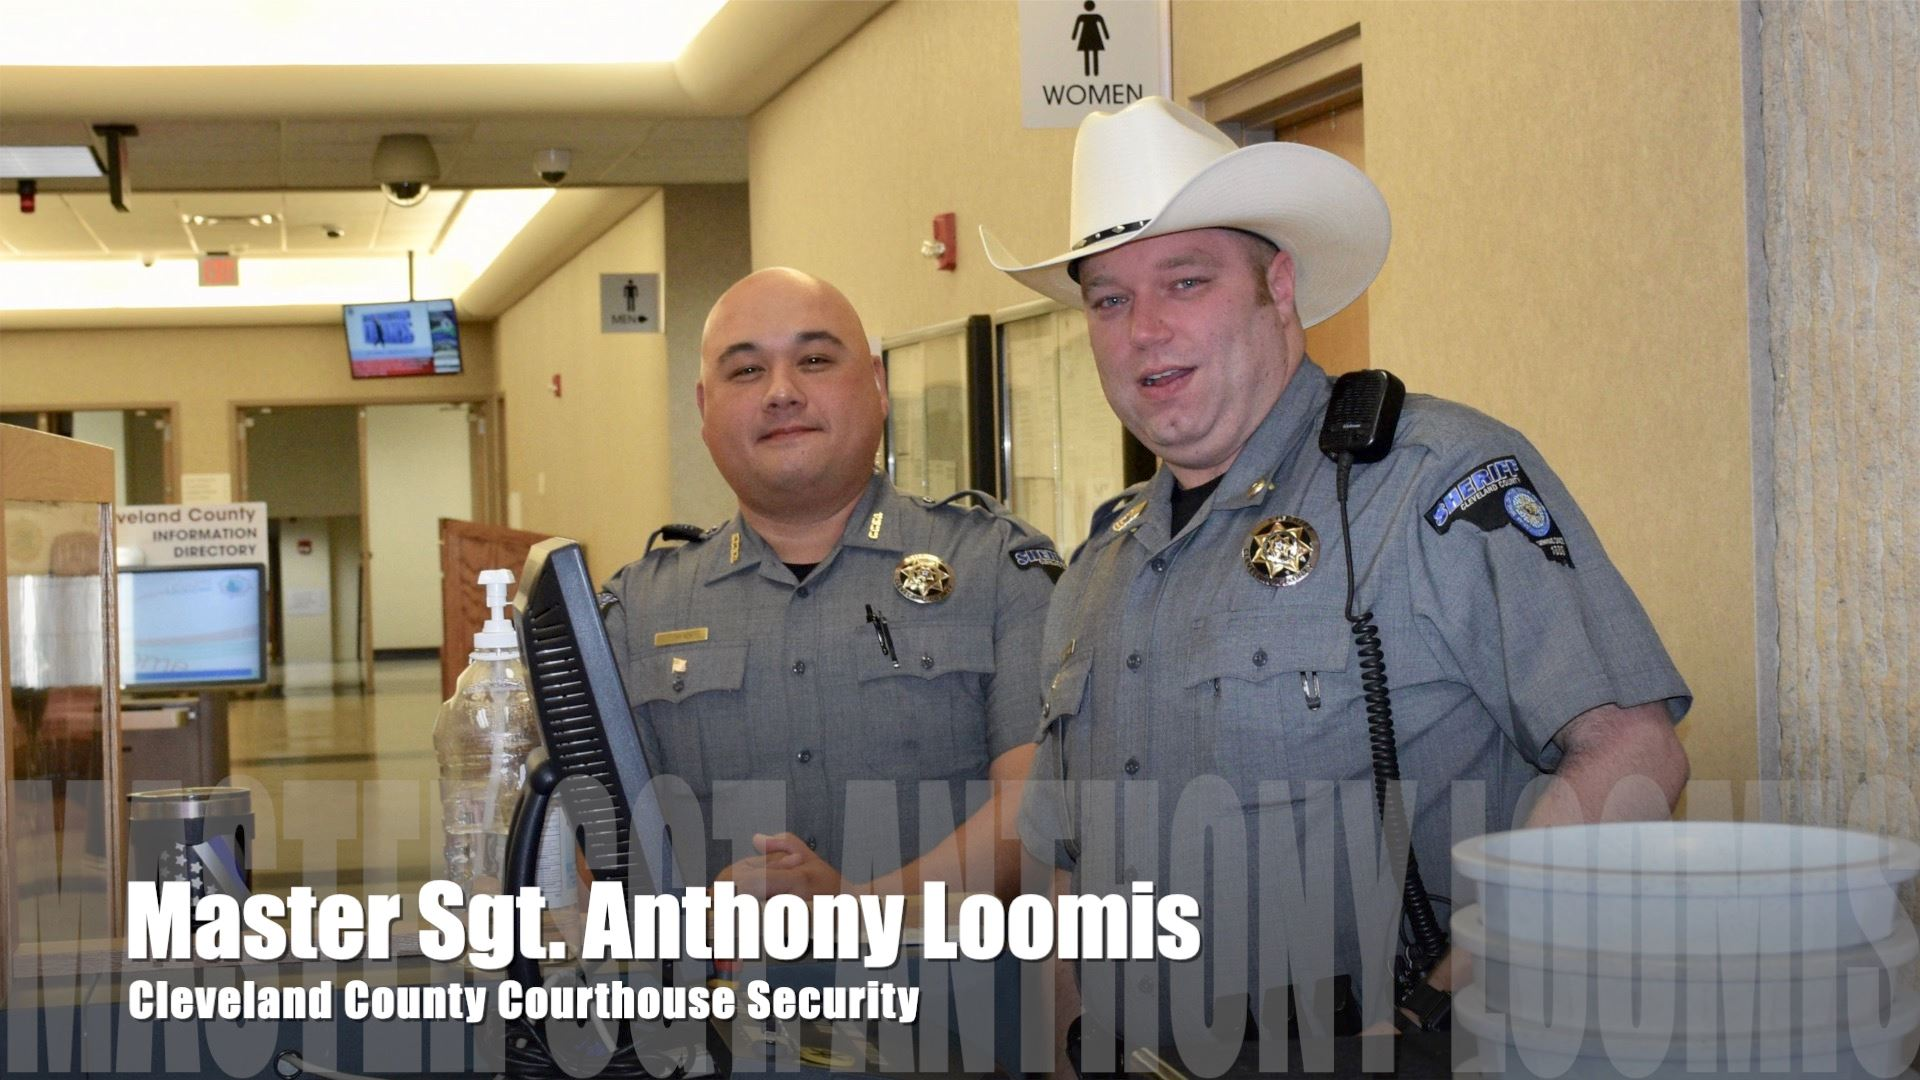 Master Sgt. Anthony Loomis Opens in new window